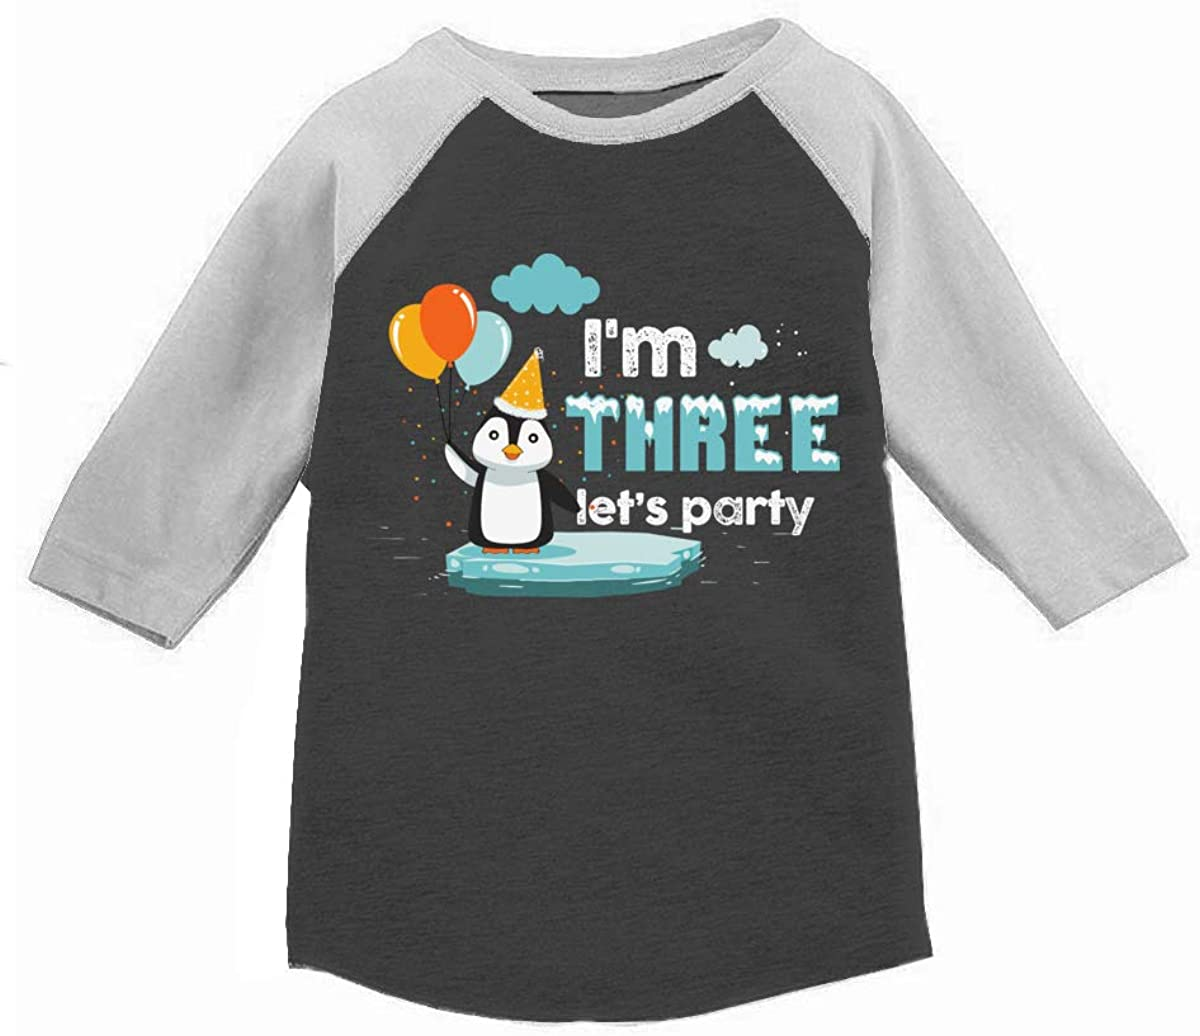 Awkward Styles Third Birthday Shirt Boy Toddler Girl Kids Funny Penguin Party